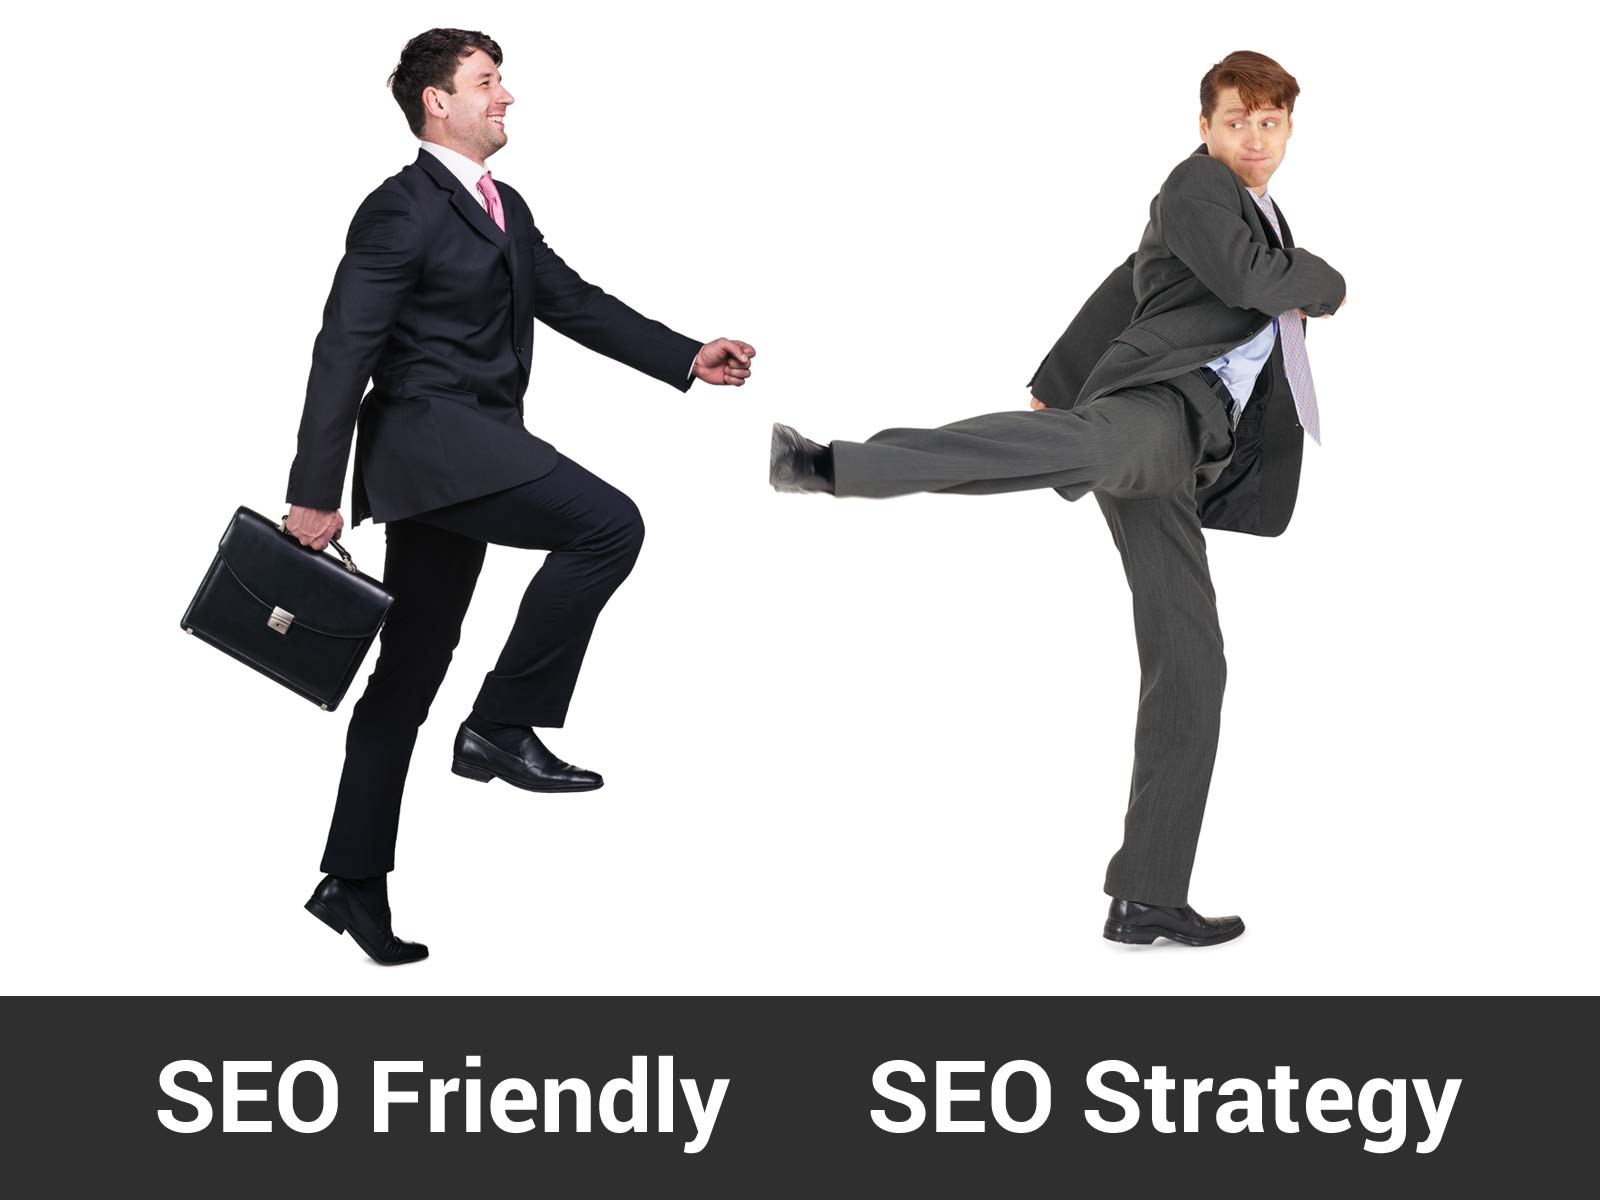 SEO Friendly vs SEO Strategy